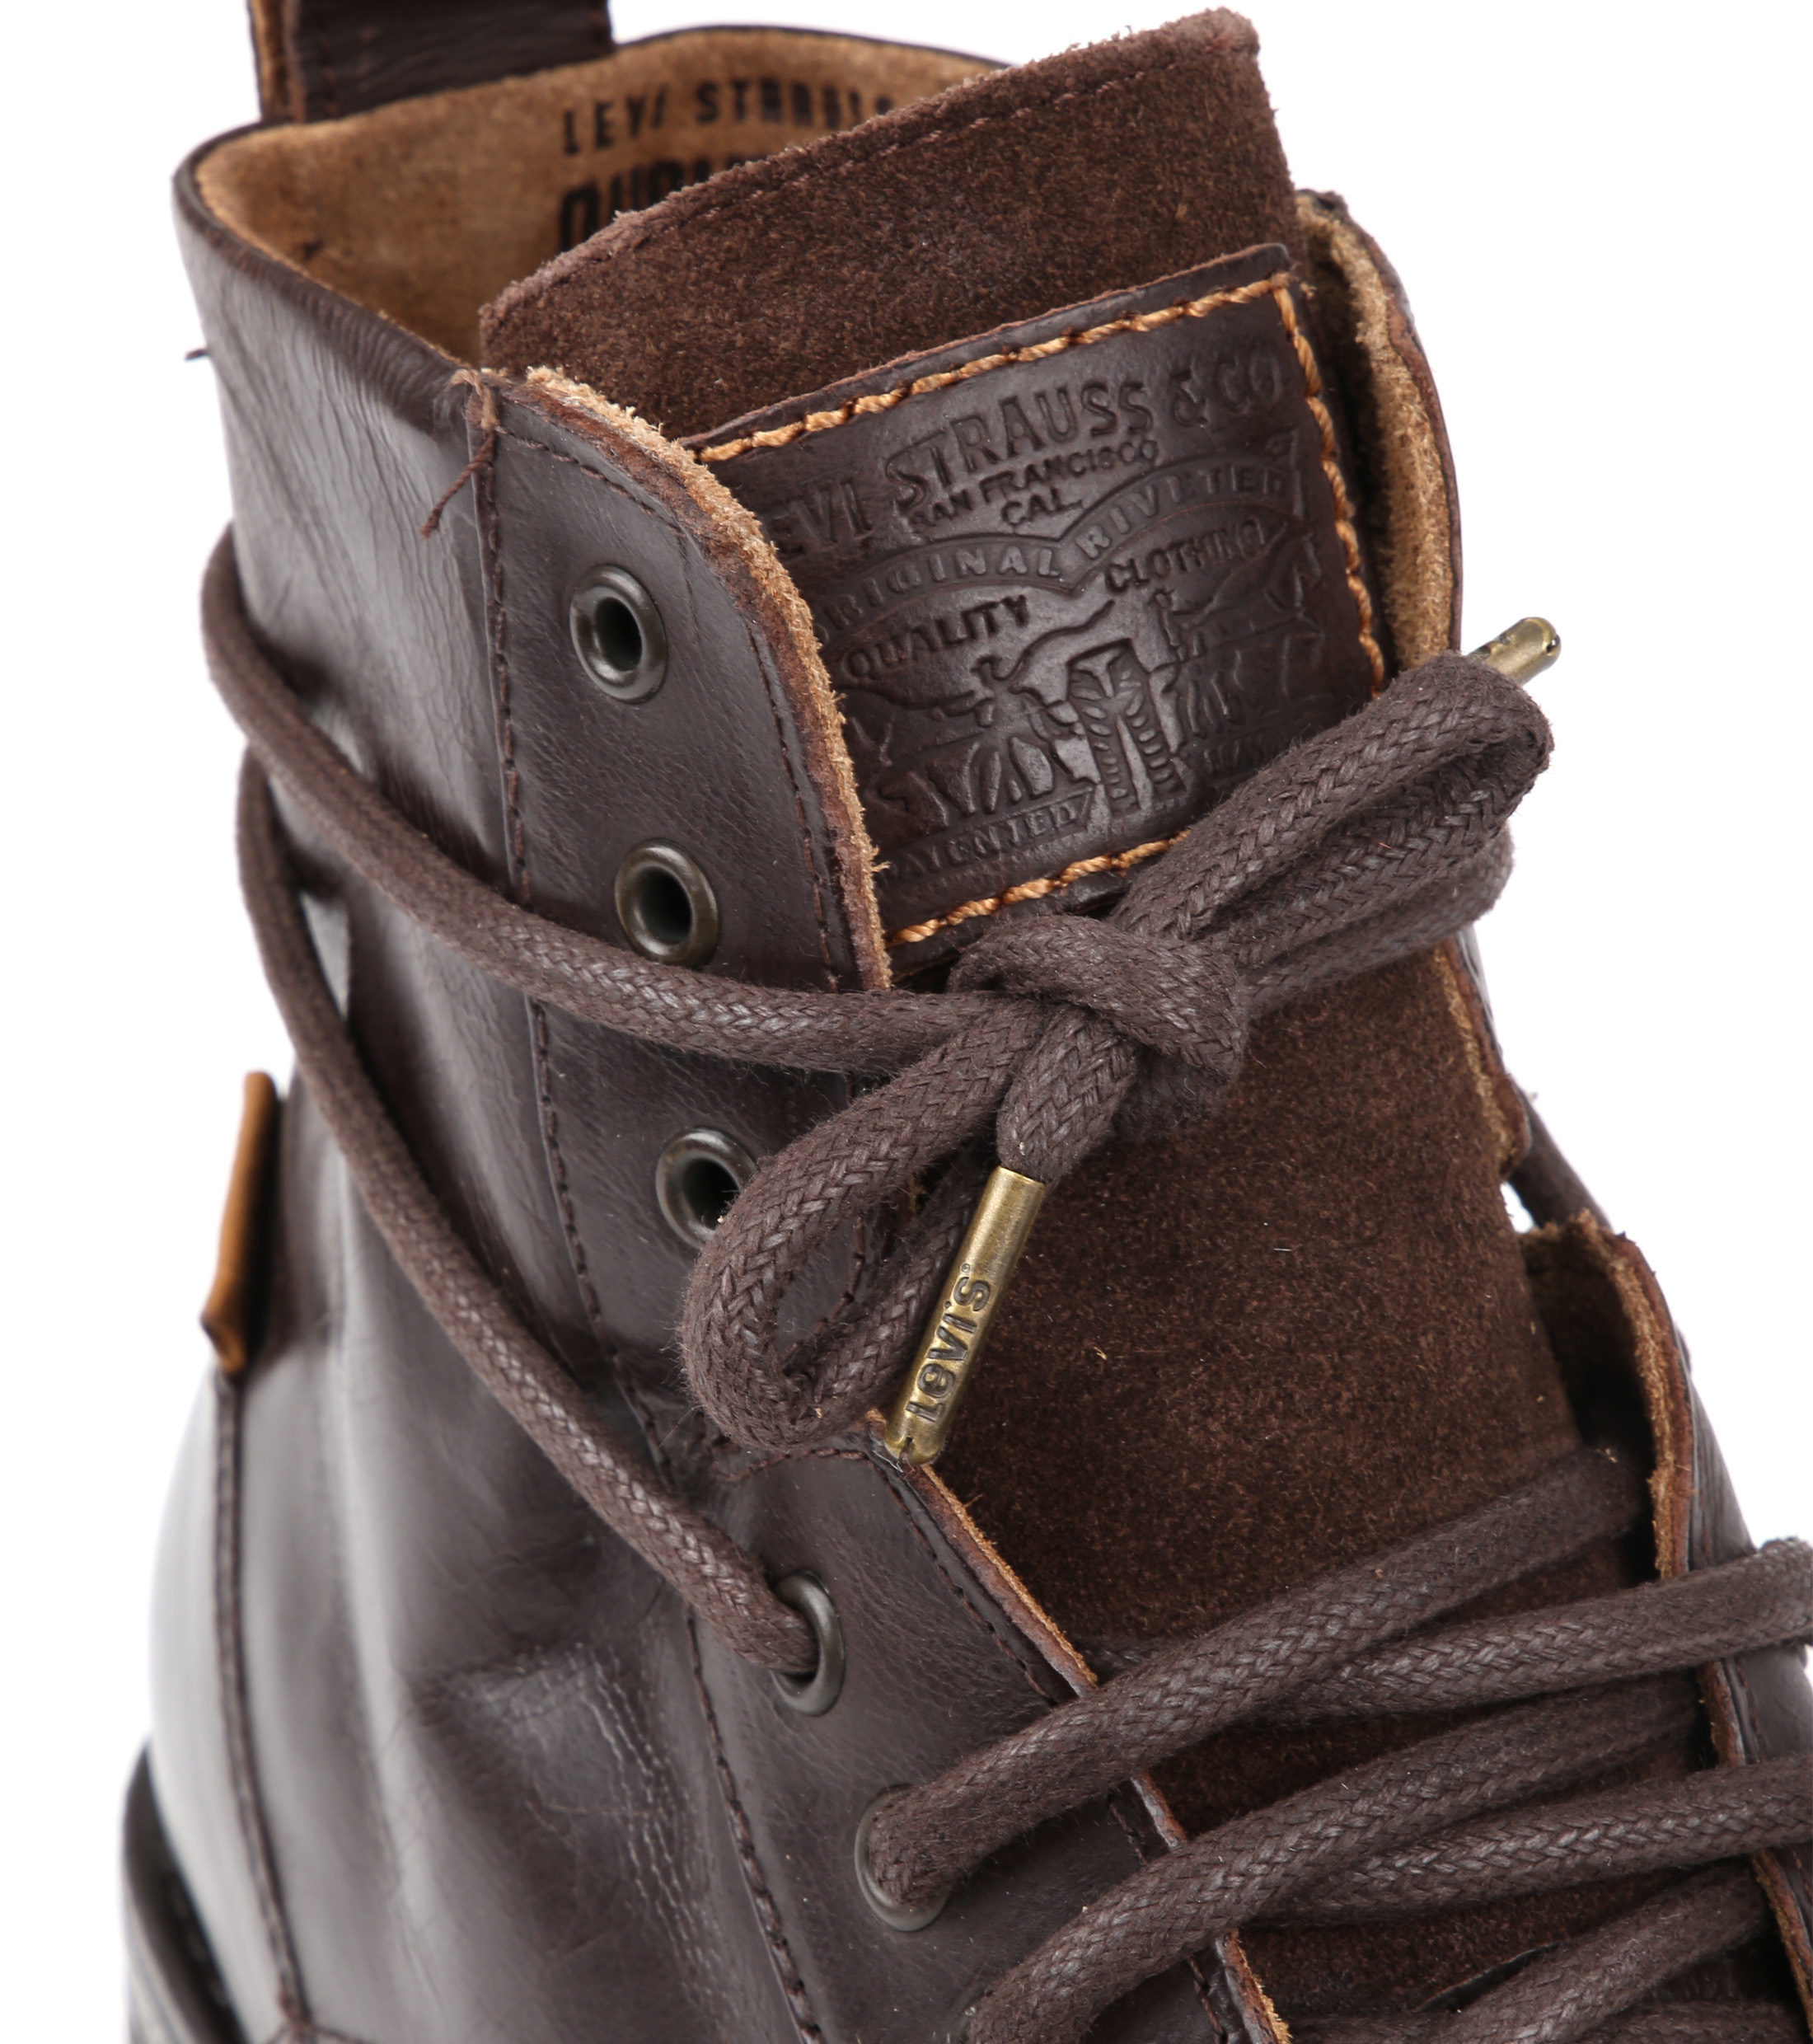 Levi's Boots Emerson Dark Brown Lether foto 1